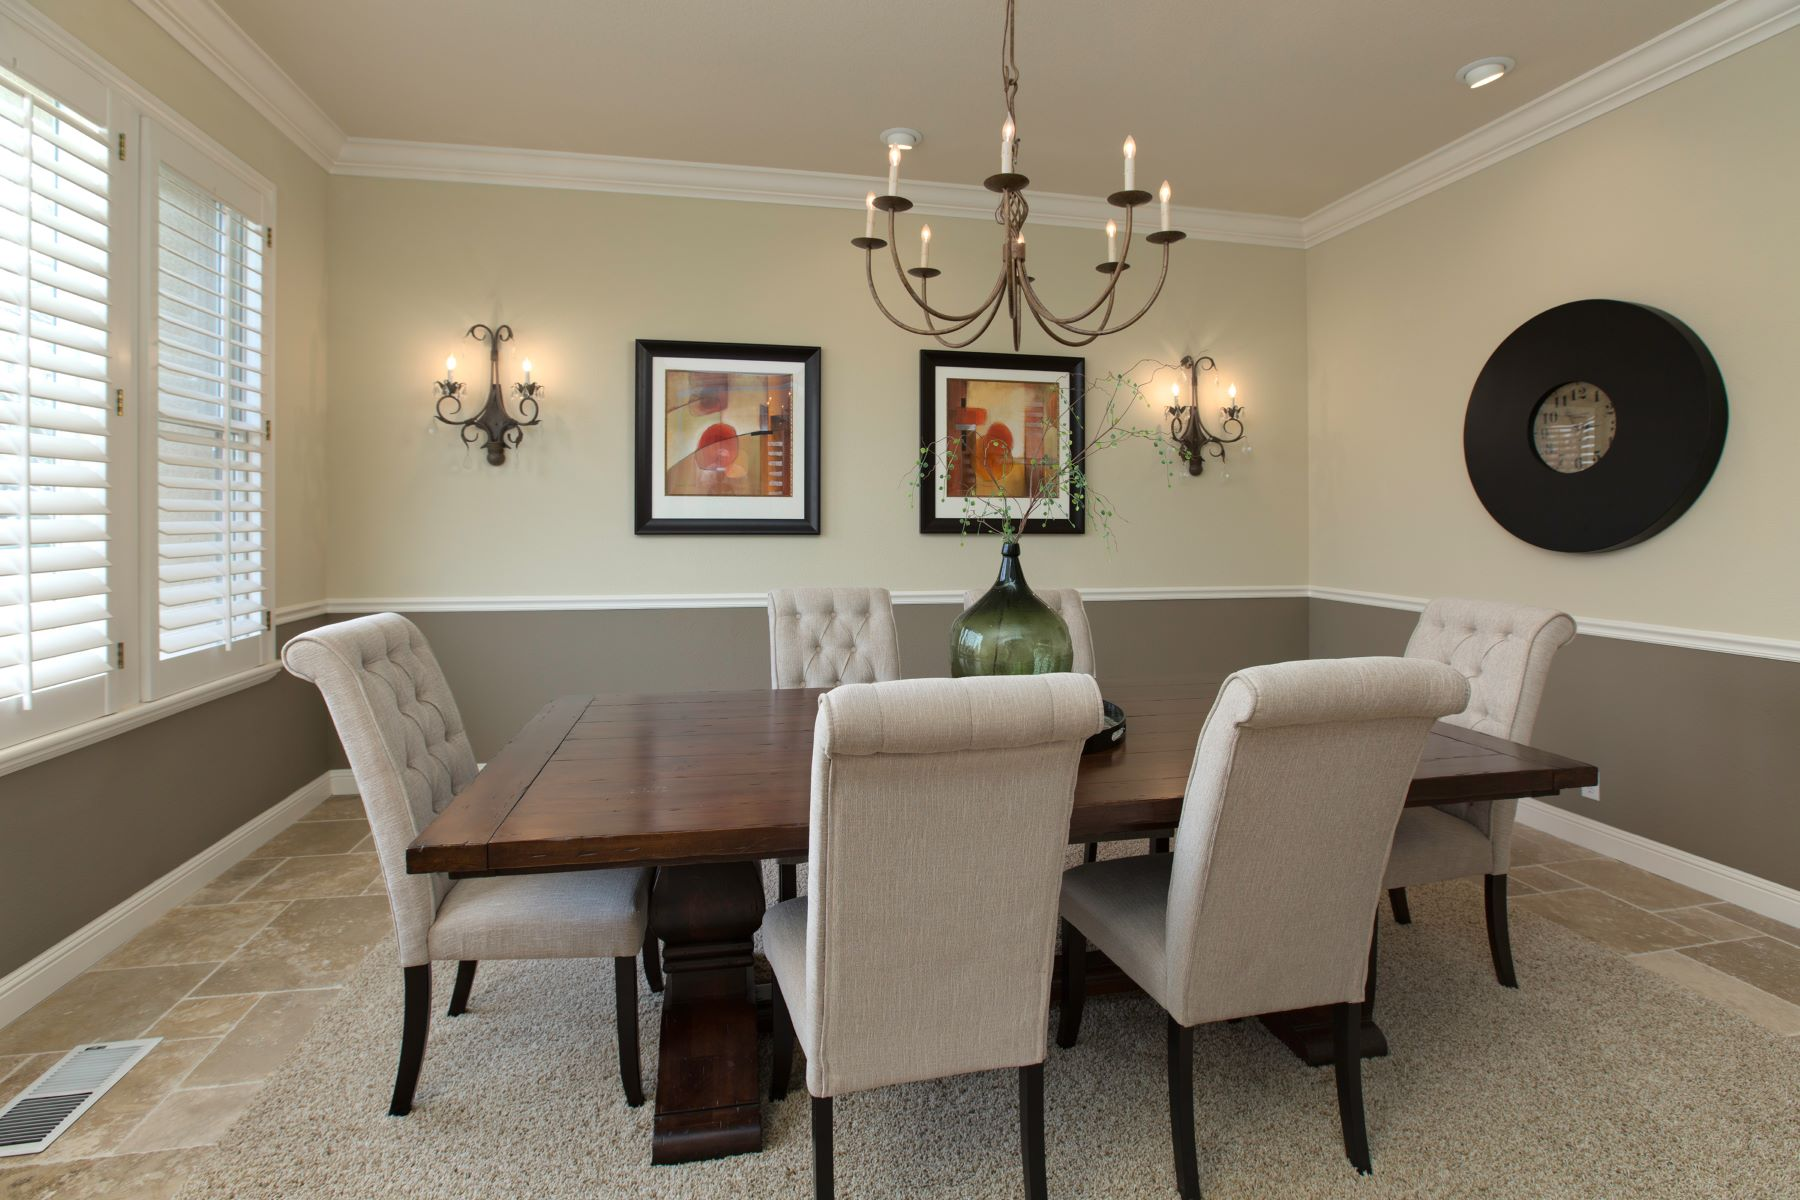 Additional photo for property listing at 2471 Pomino Way 2471 Pomino Way Pleasanton, California 94566 United States